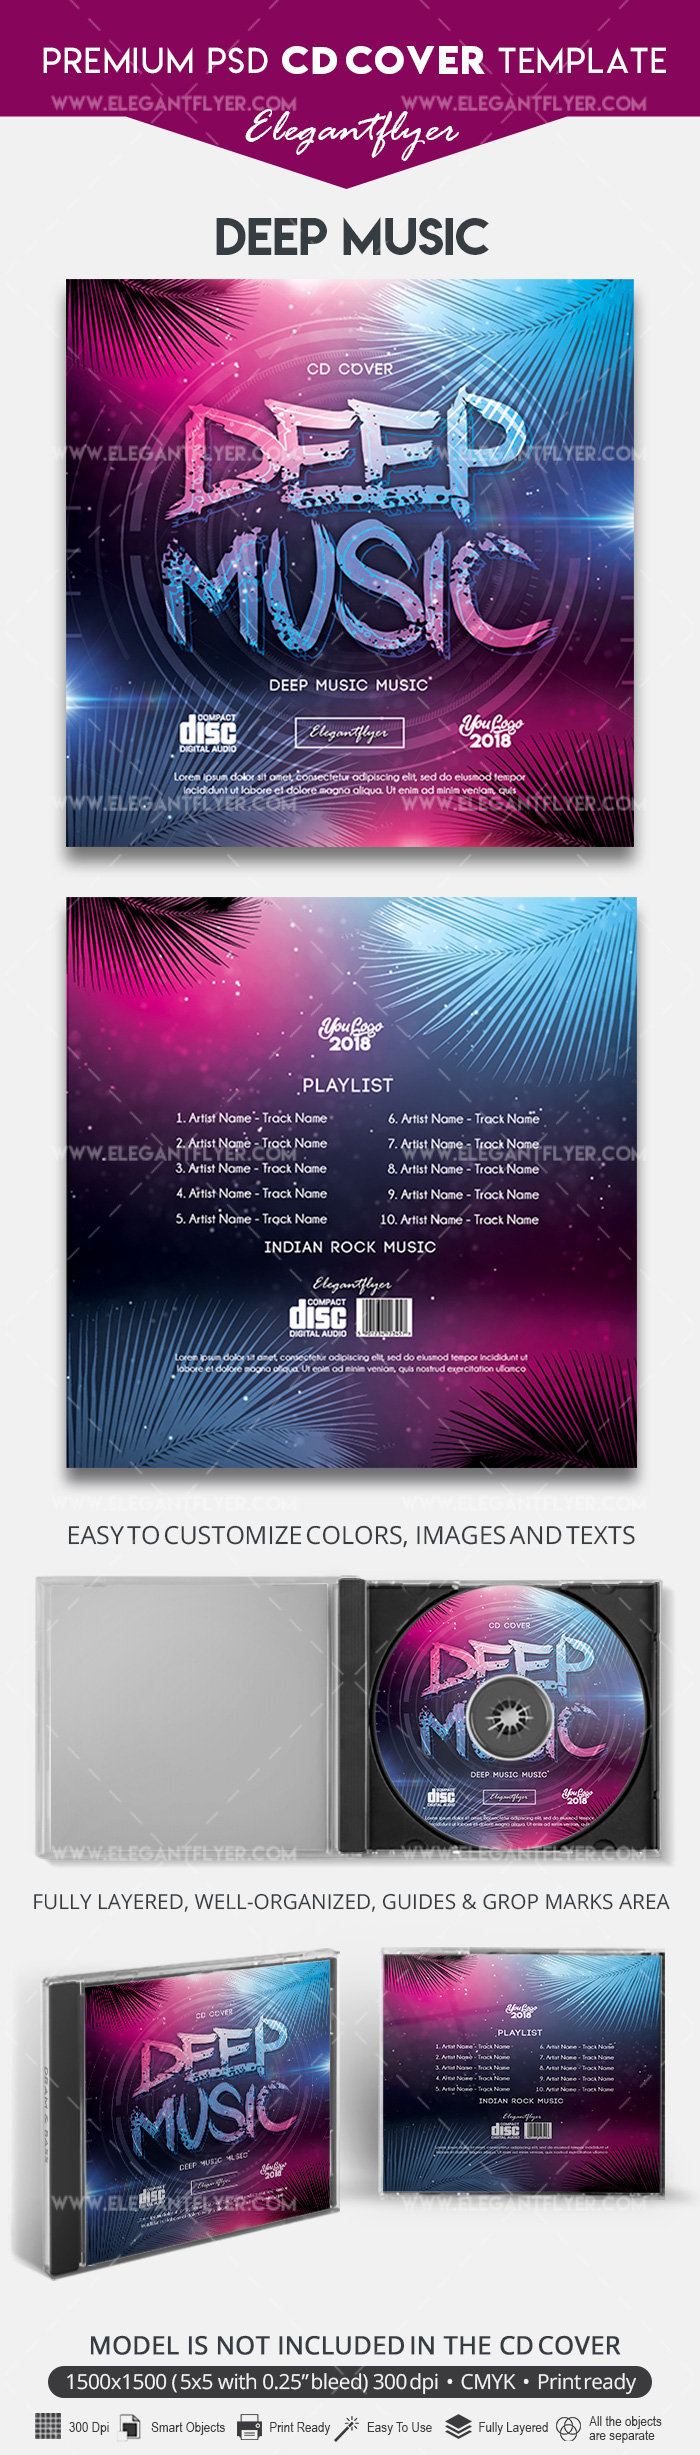 Deep Music – CD Cover Template